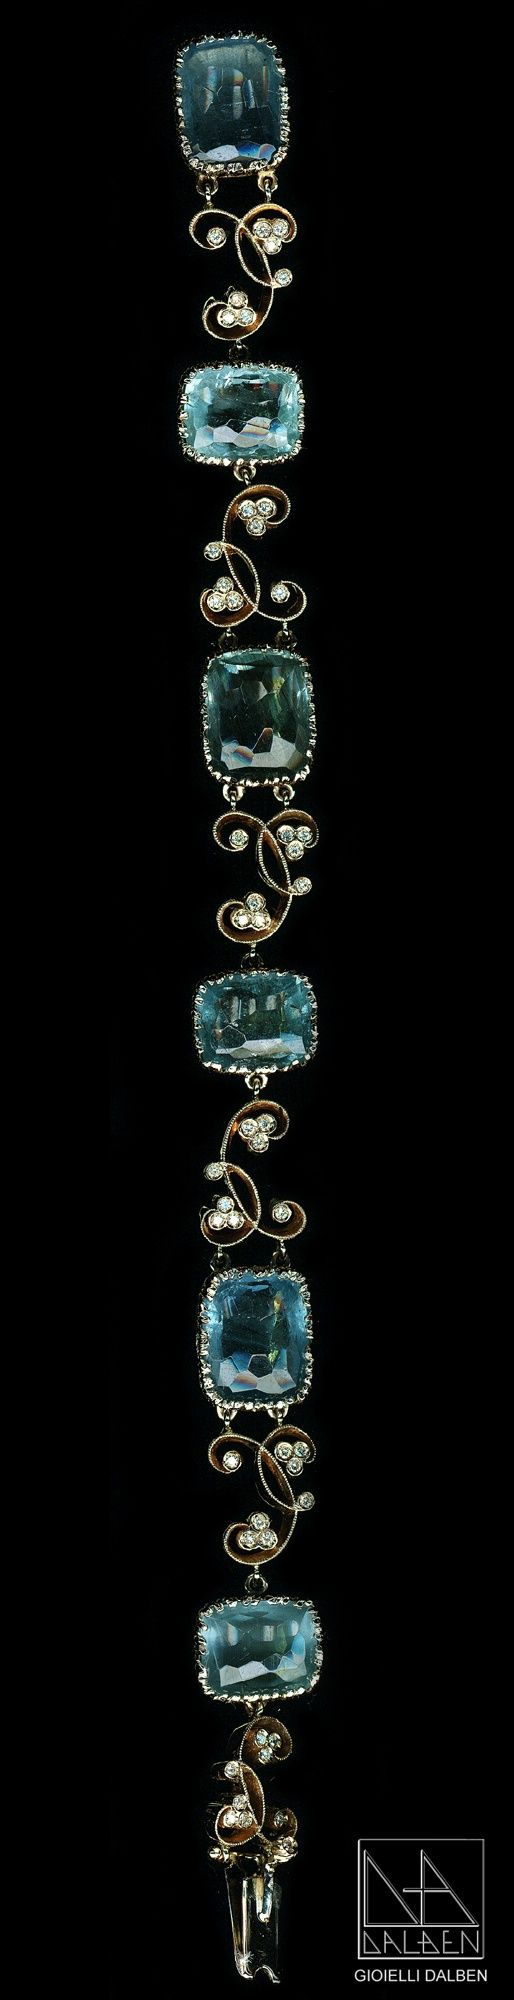 Diamonds Aquamarine Bracelet Gioielli Dalben Jewelry